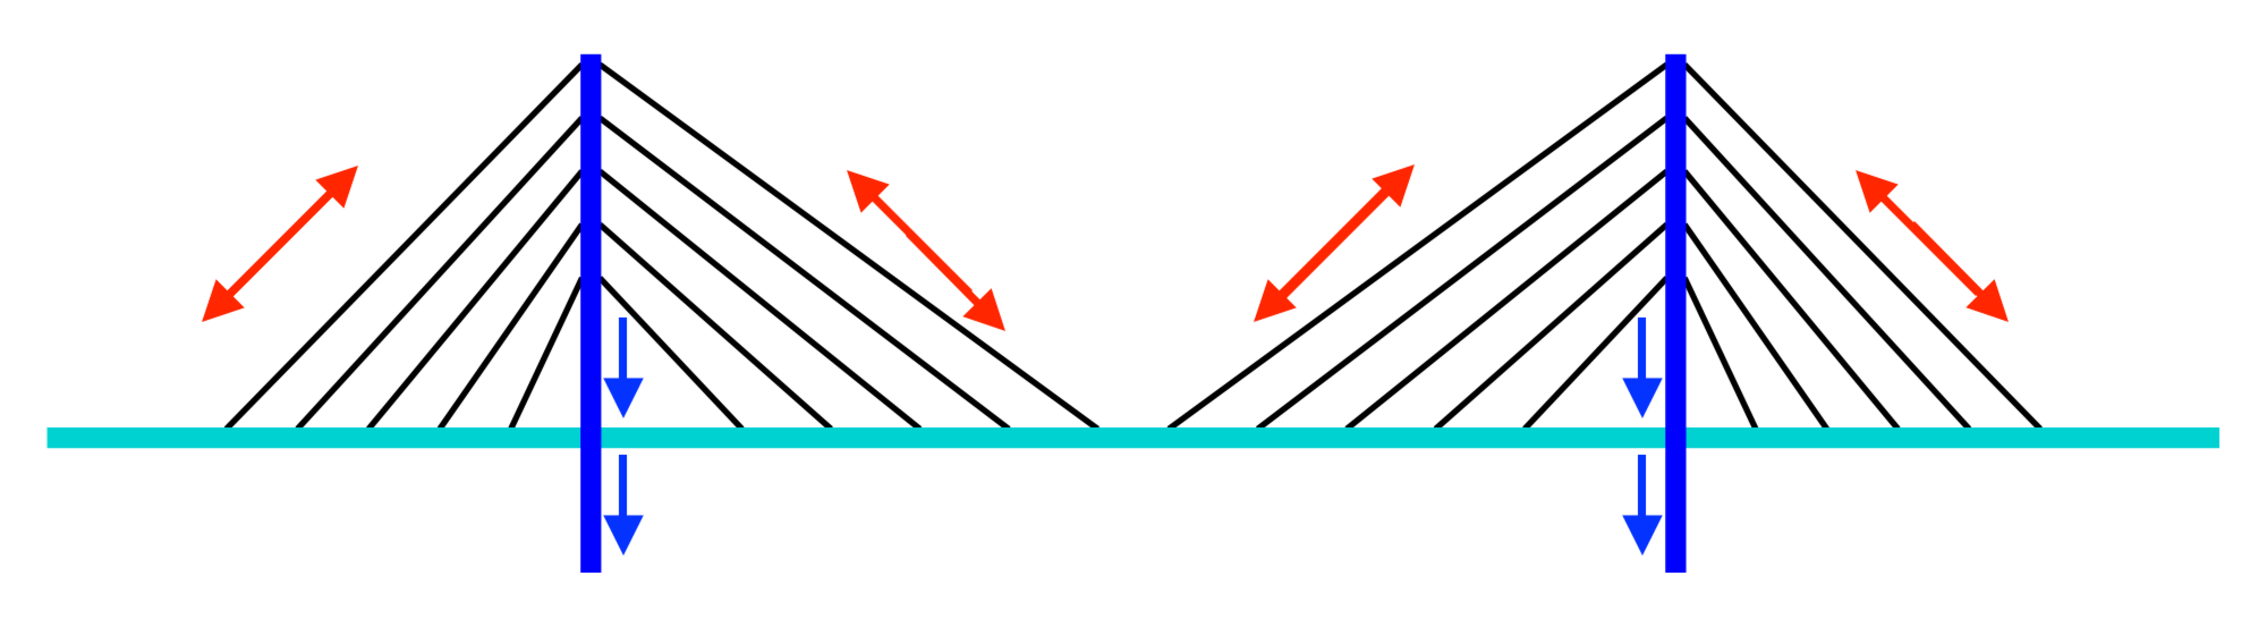 In a cable-stayed bridge, the cables connect directly from the deck to the towers. - Image Credit: The Conversation , CC BY-ND